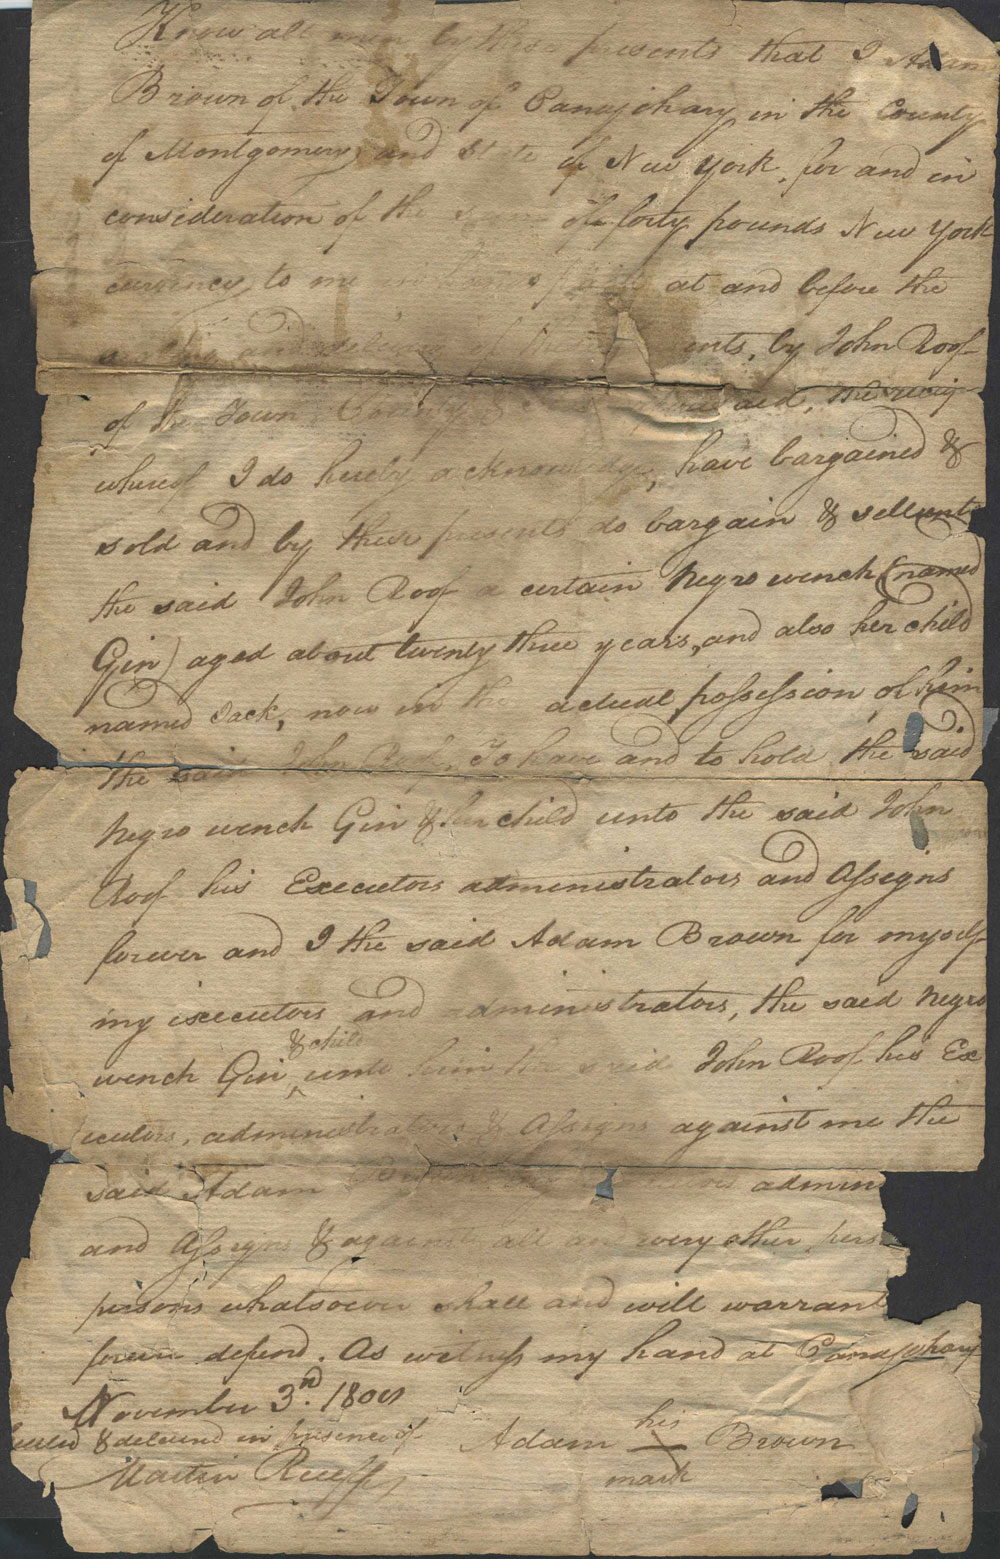 bill of sale of two negros from adam brown to john roof of the